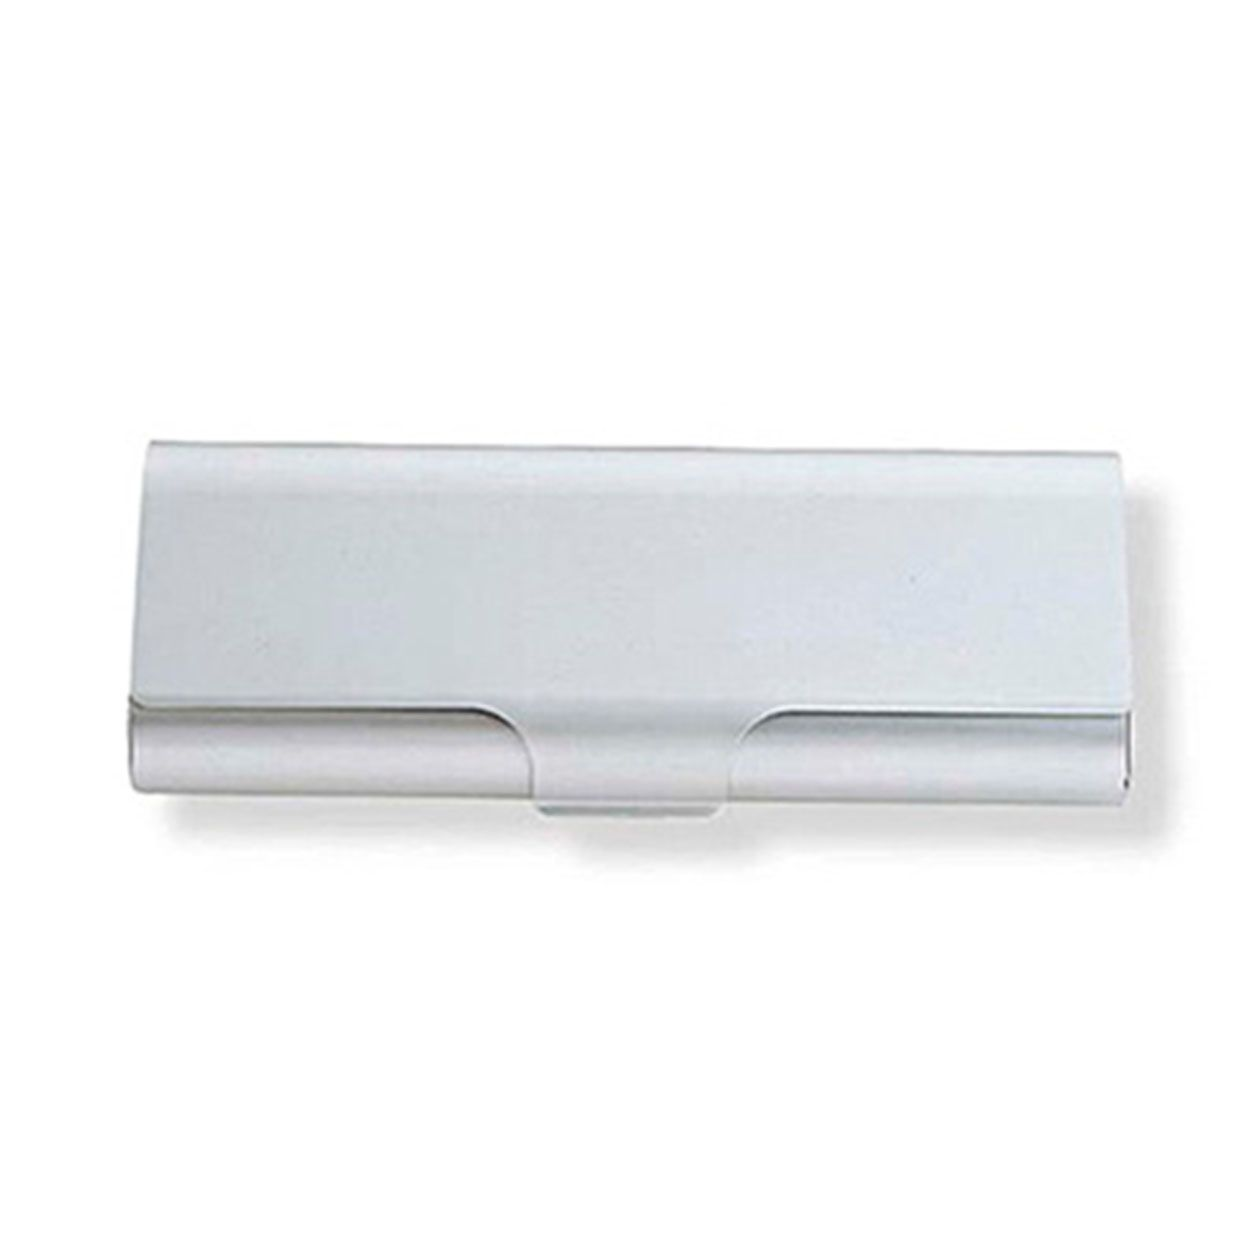 Muji Sunglasses Case | Frames | Pinterest | Muji, Muji online and ...